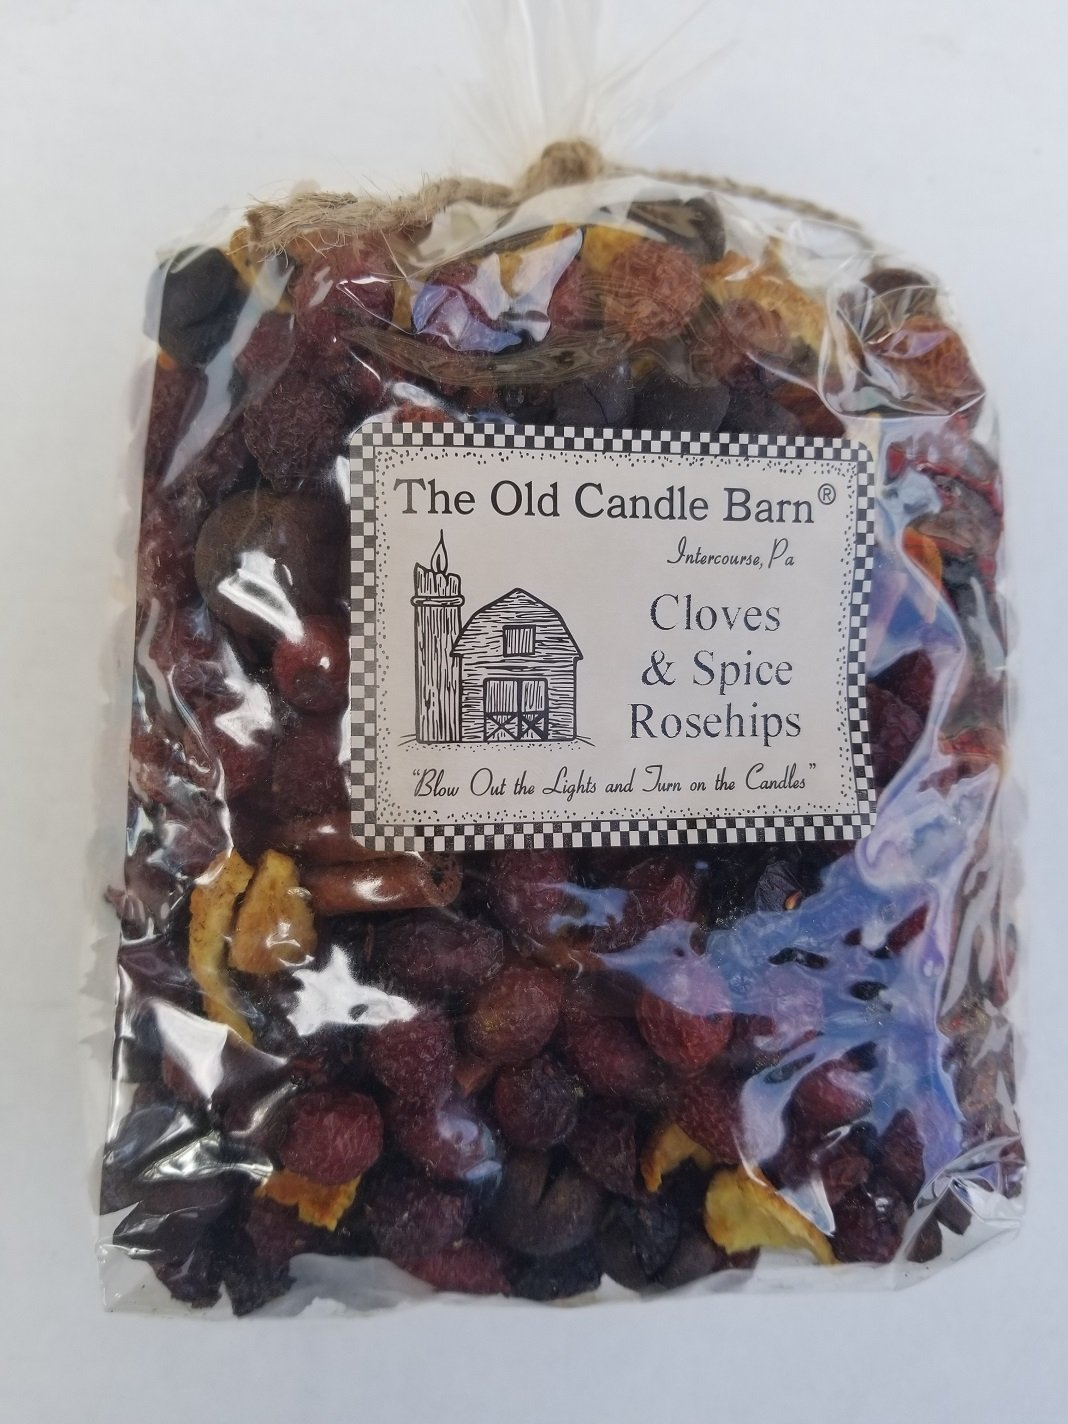 Cloves & Spice Rosehips Large Bag - Well Scented Potpourri - Made In USA